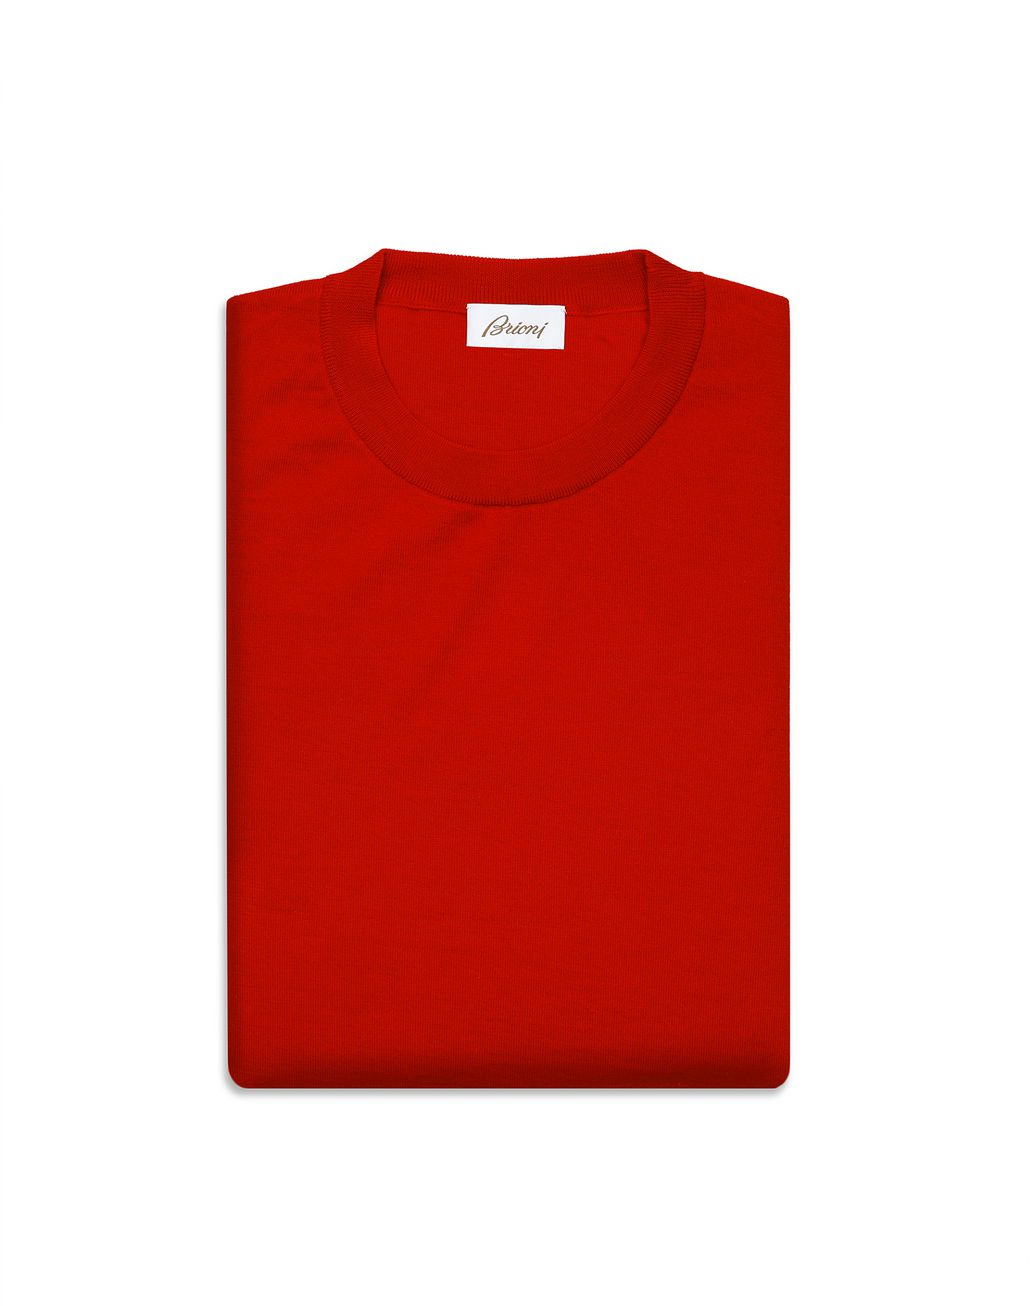 BRIONI Limited Edition Red Cashmere Sweater Knitwear Man e